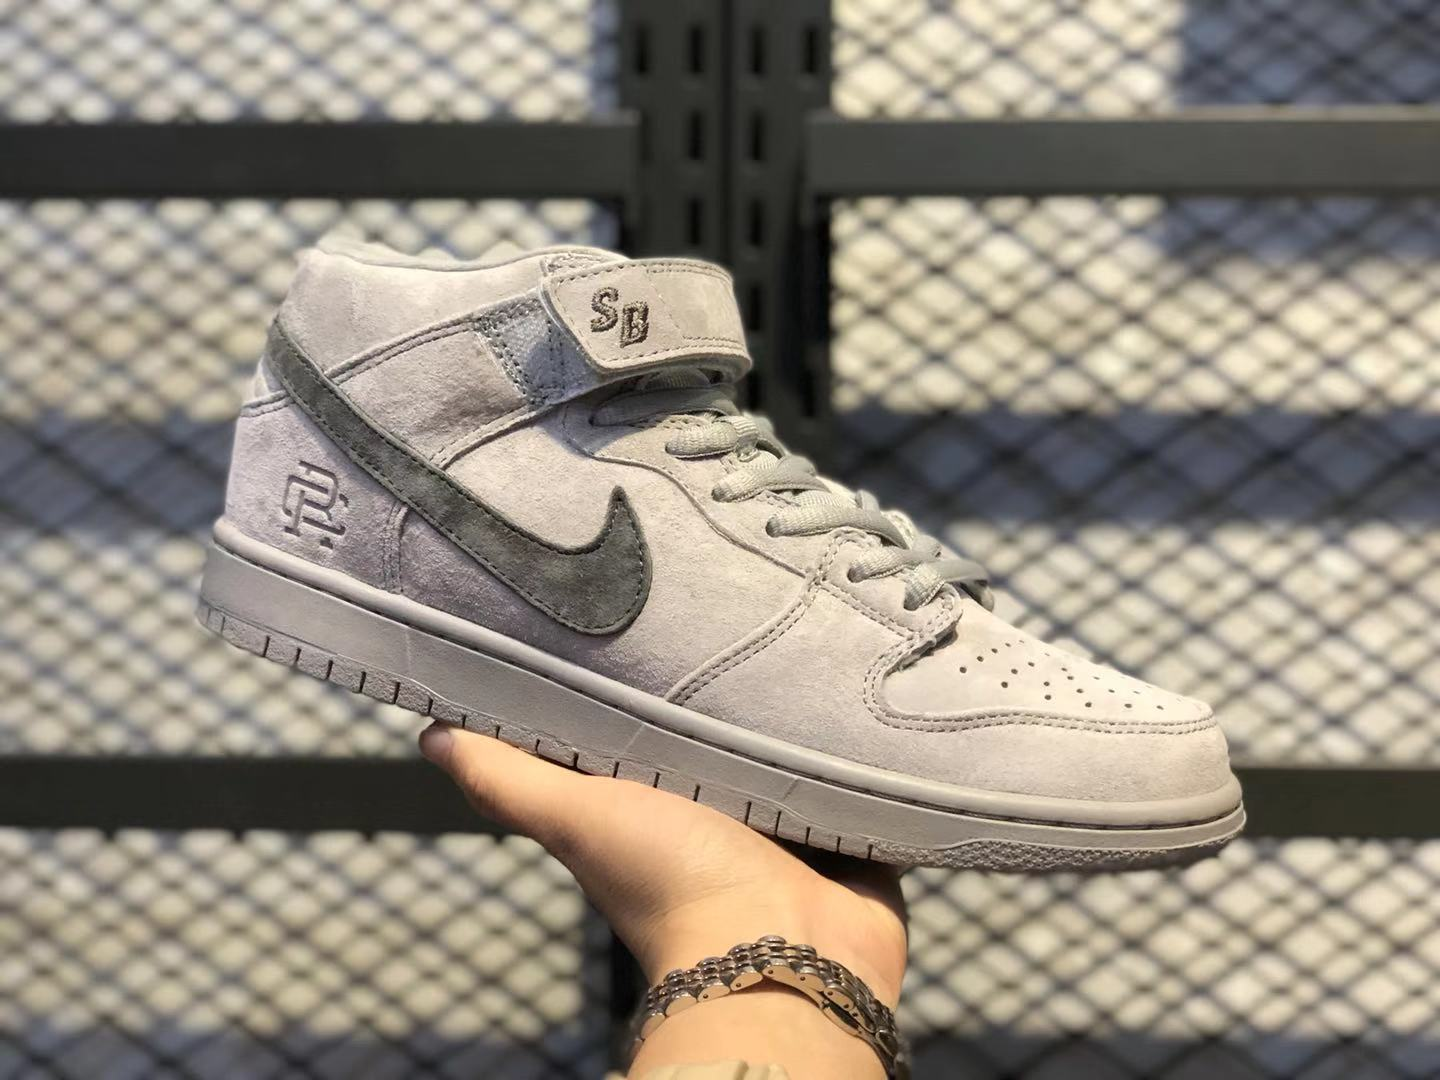 Nike SB Dunk x Reigning Champ Collaboration Grey White Top Shoes Online Buy